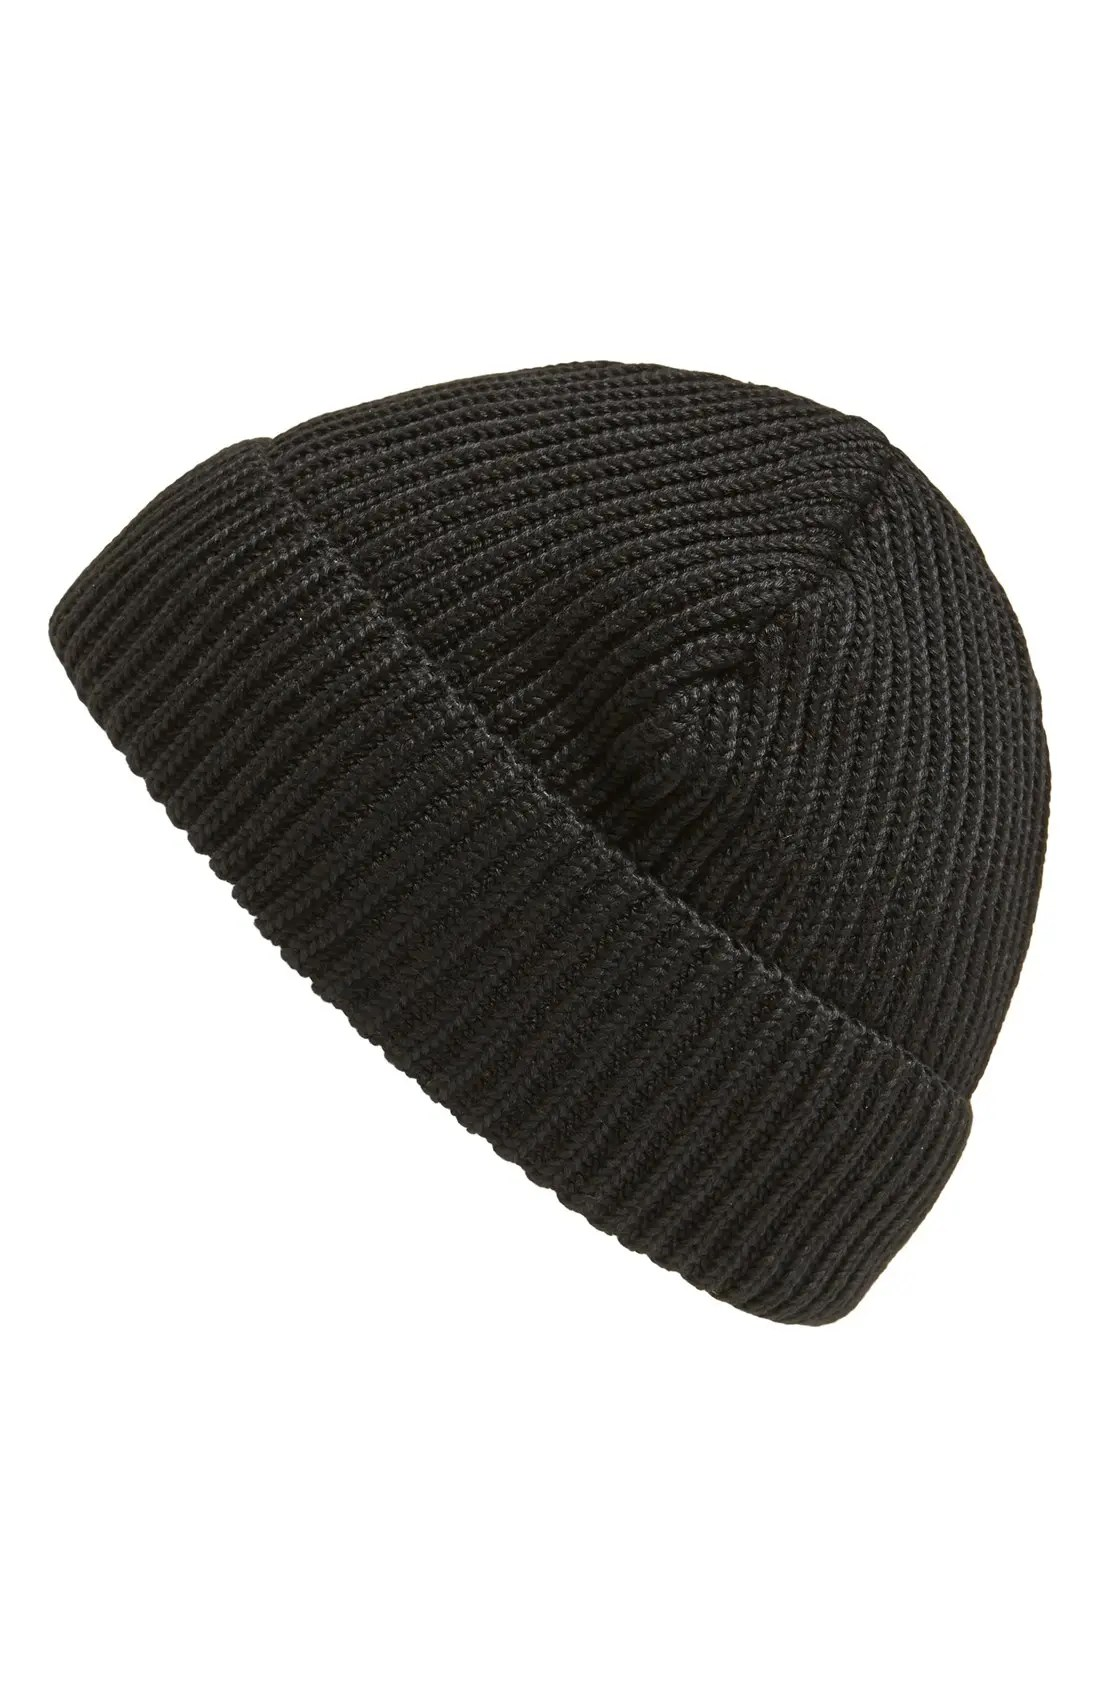 PATAGONIA Fisherman Beanie, Main, color, BLACK